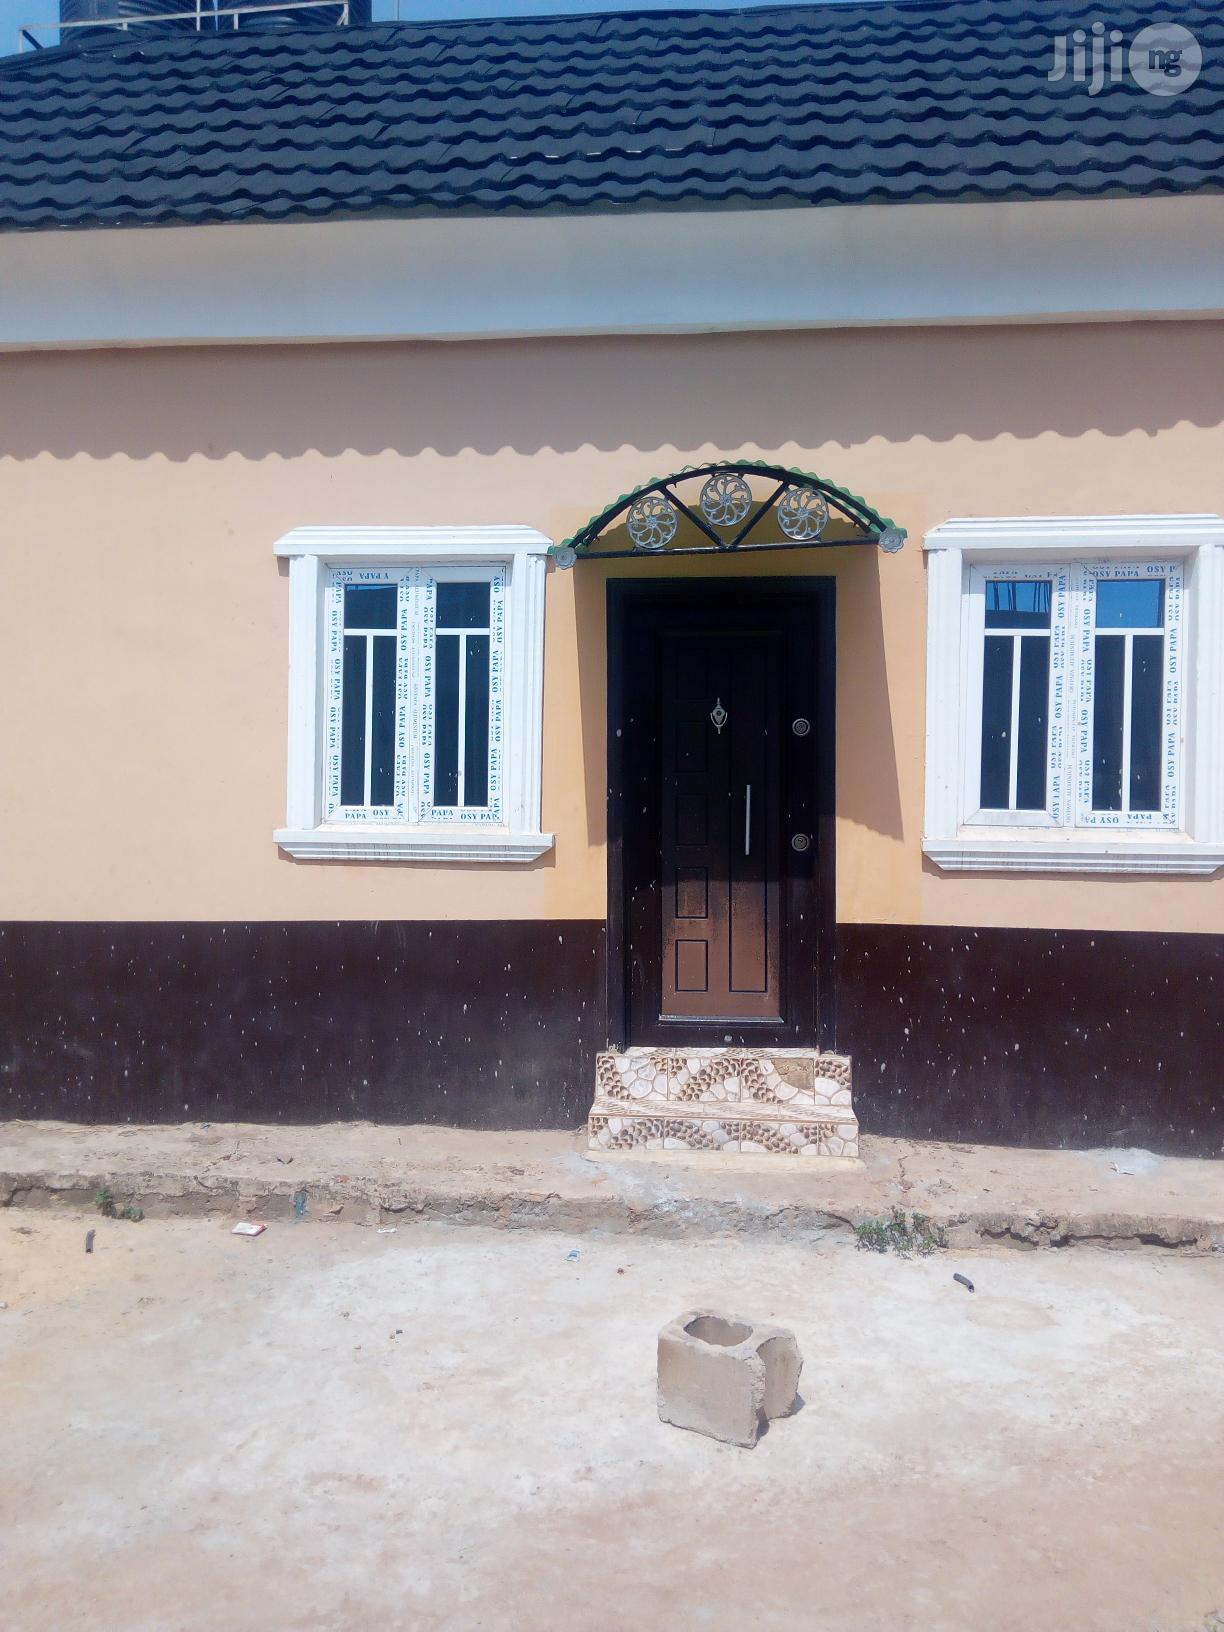 1 Bedroom Flat To Let By Ngozika Estate | Houses & Apartments For Rent for sale in Awka, Anambra State, Nigeria